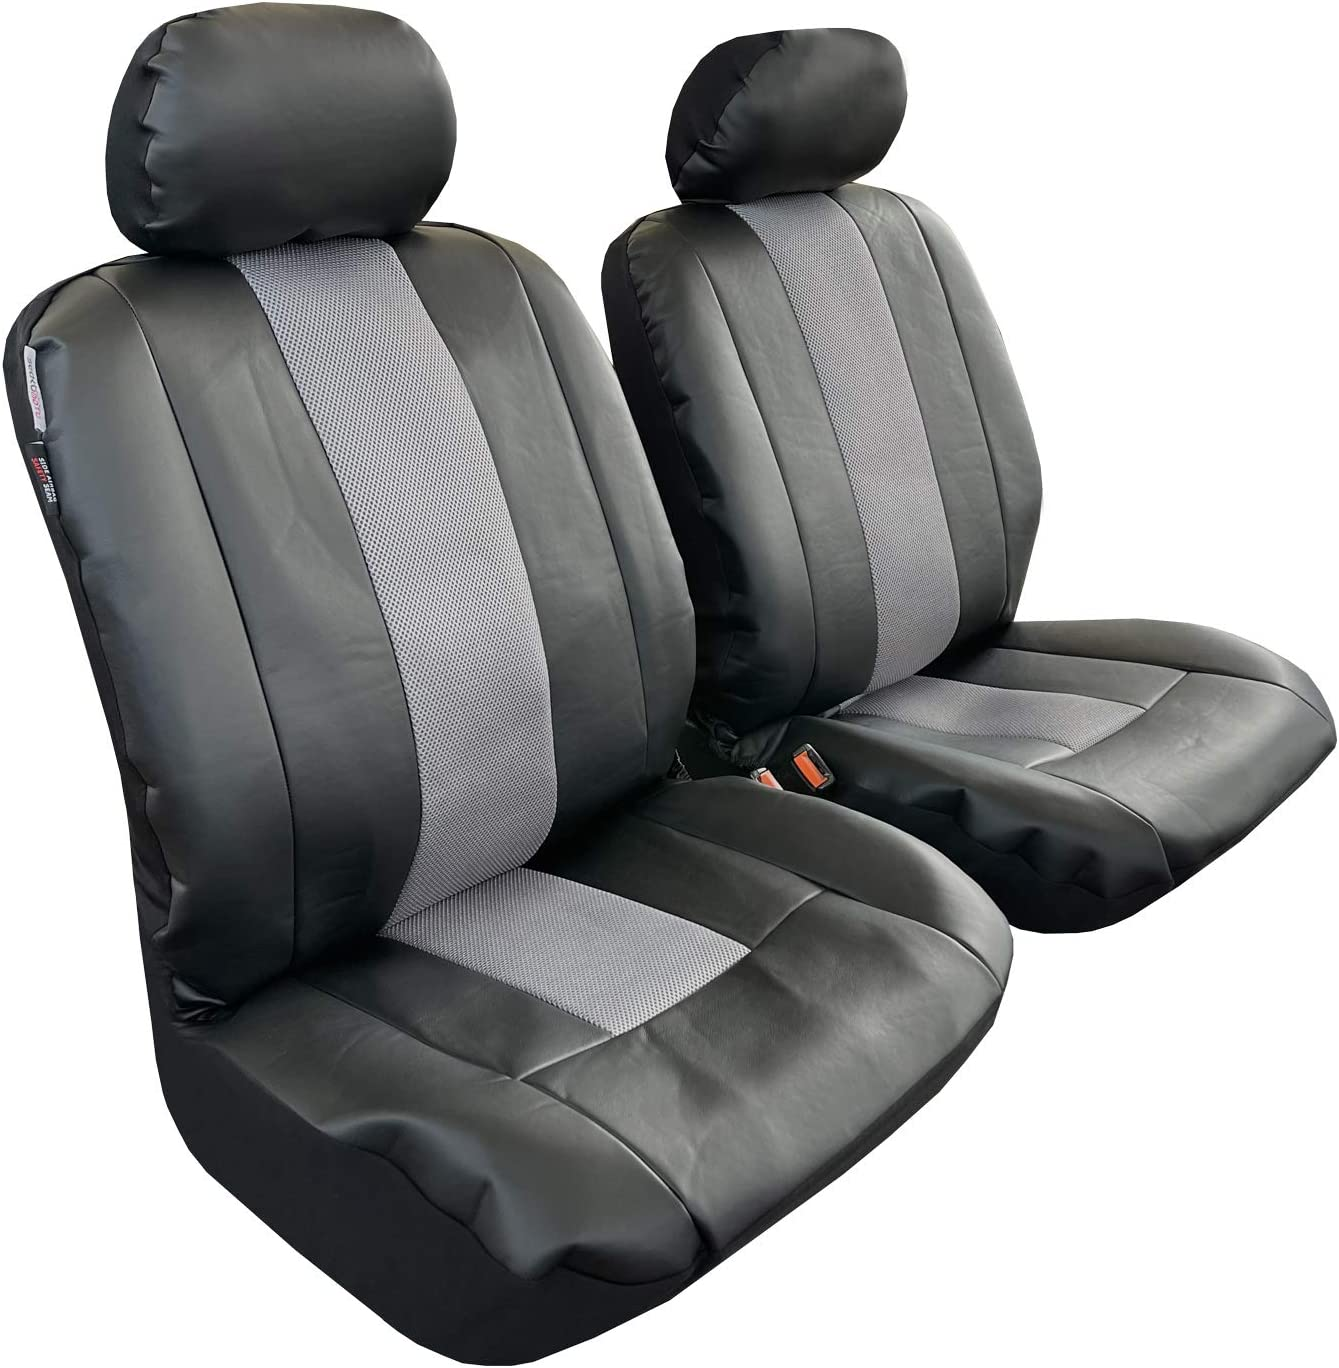 Leather Seat Covers for Jeep Wrangler 2 JK JL Set 4 Direct sale Cheap SALE Start of manufacturer Door Front